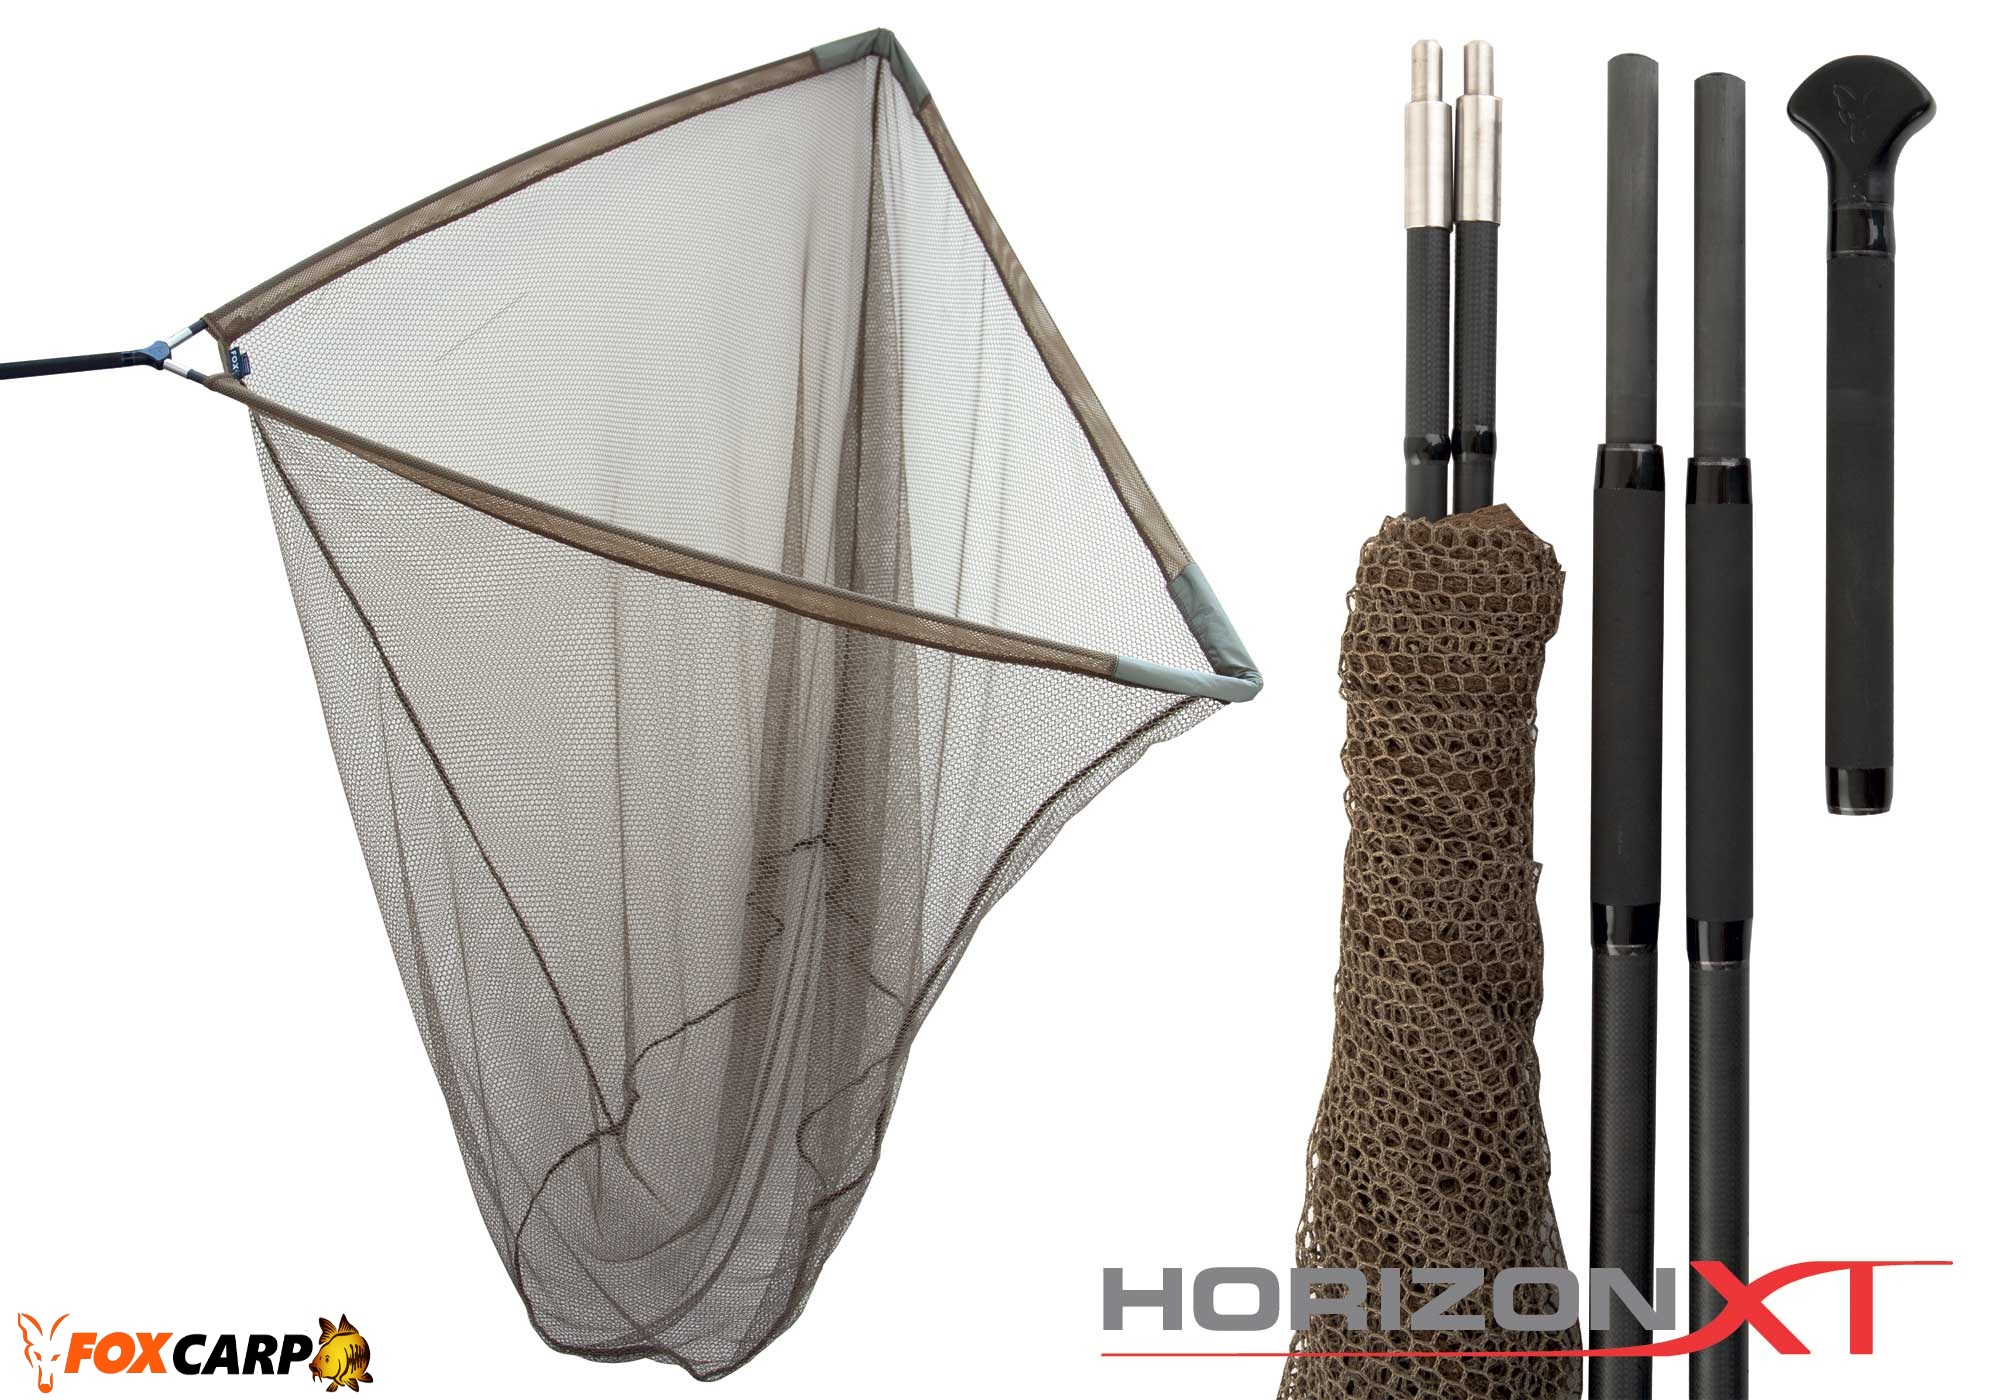 Fox Подсак Horizon XT Landing Net NEW